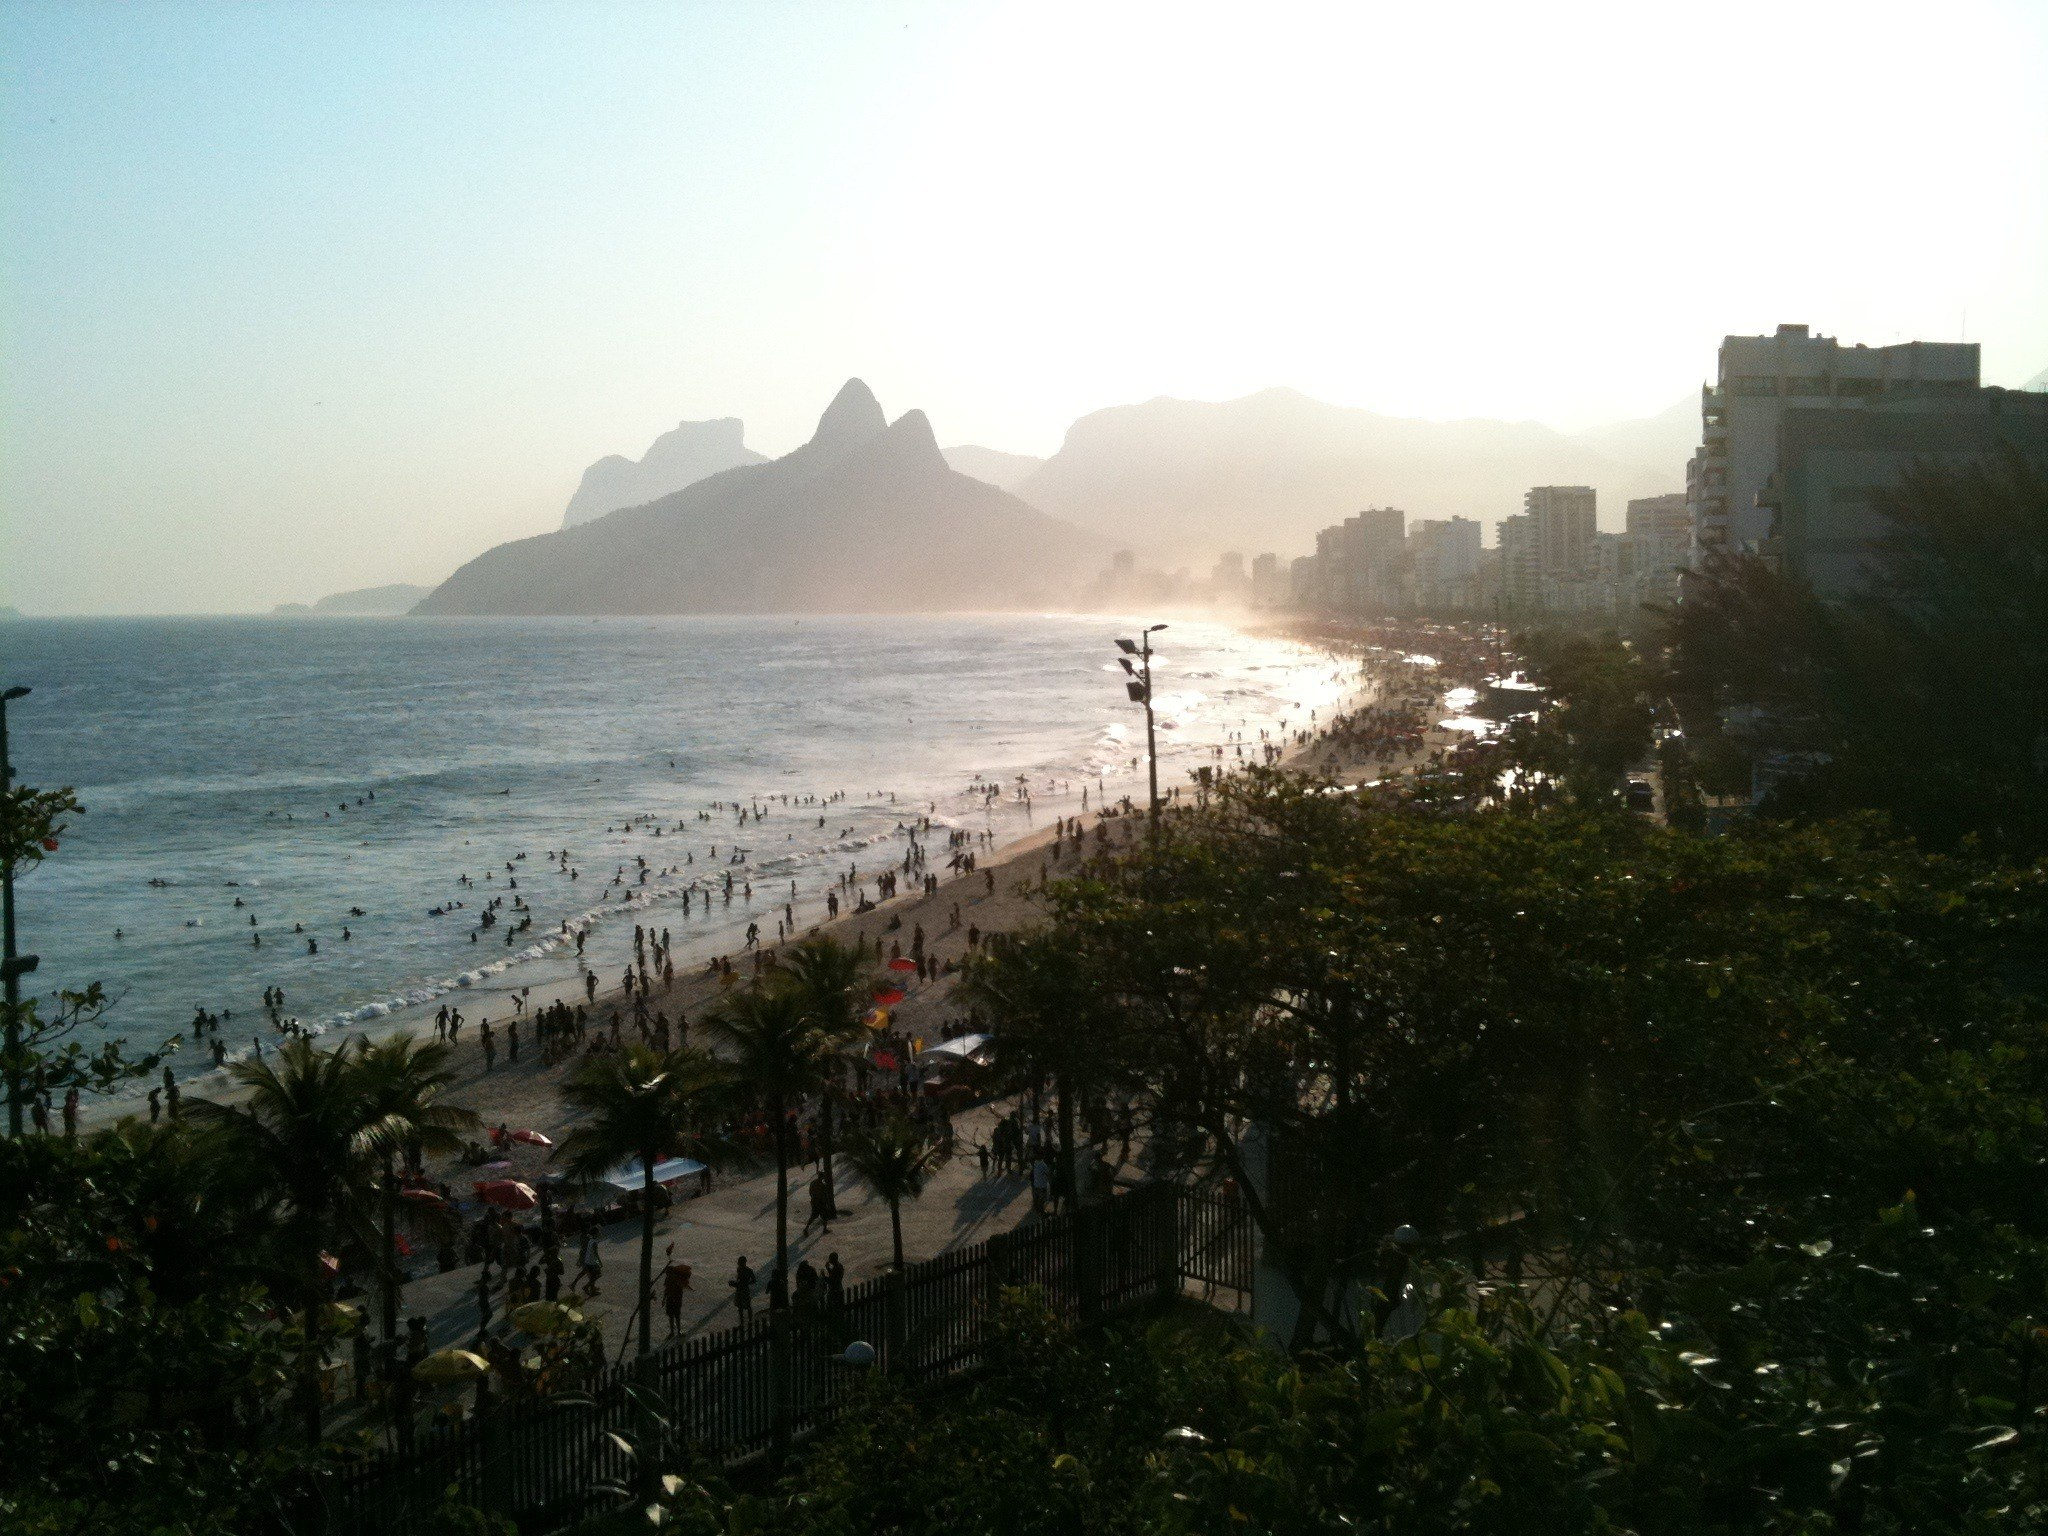 View of Rio from the skateboard bowl